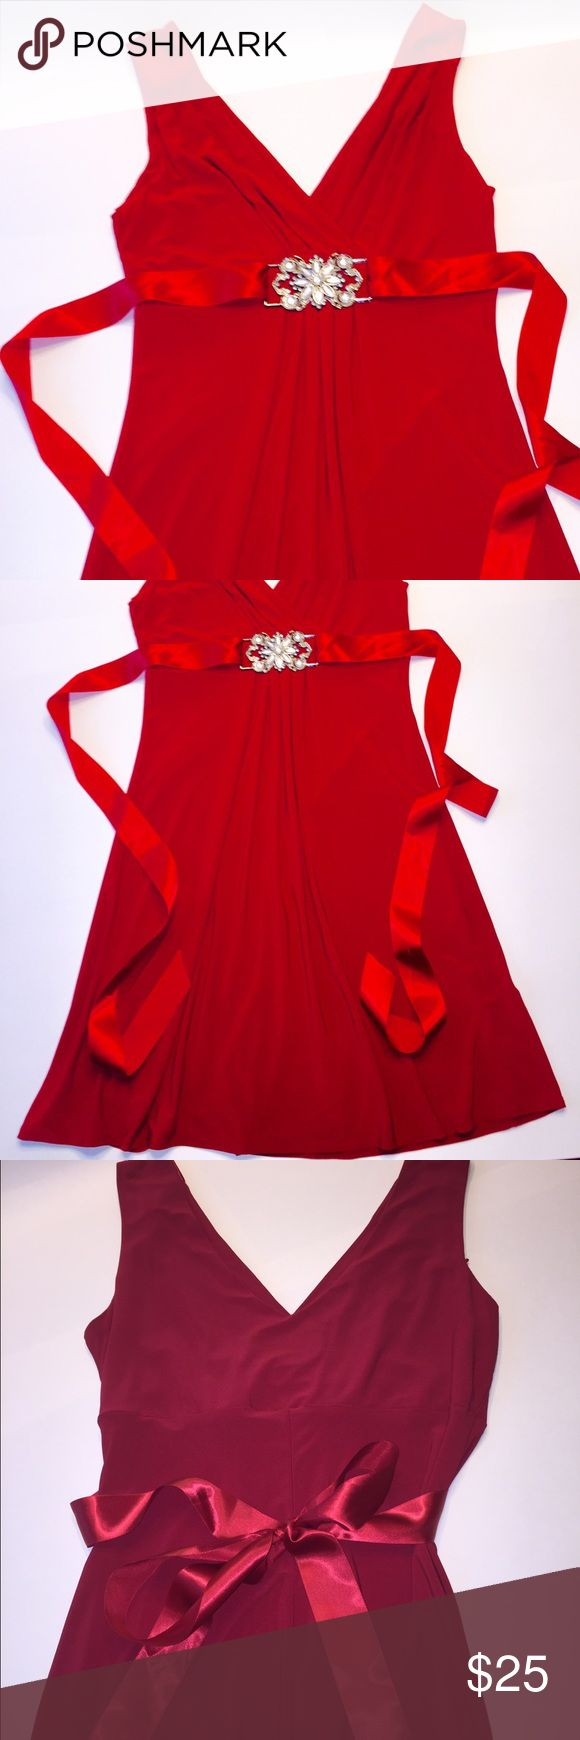 Red dress amazon coupons